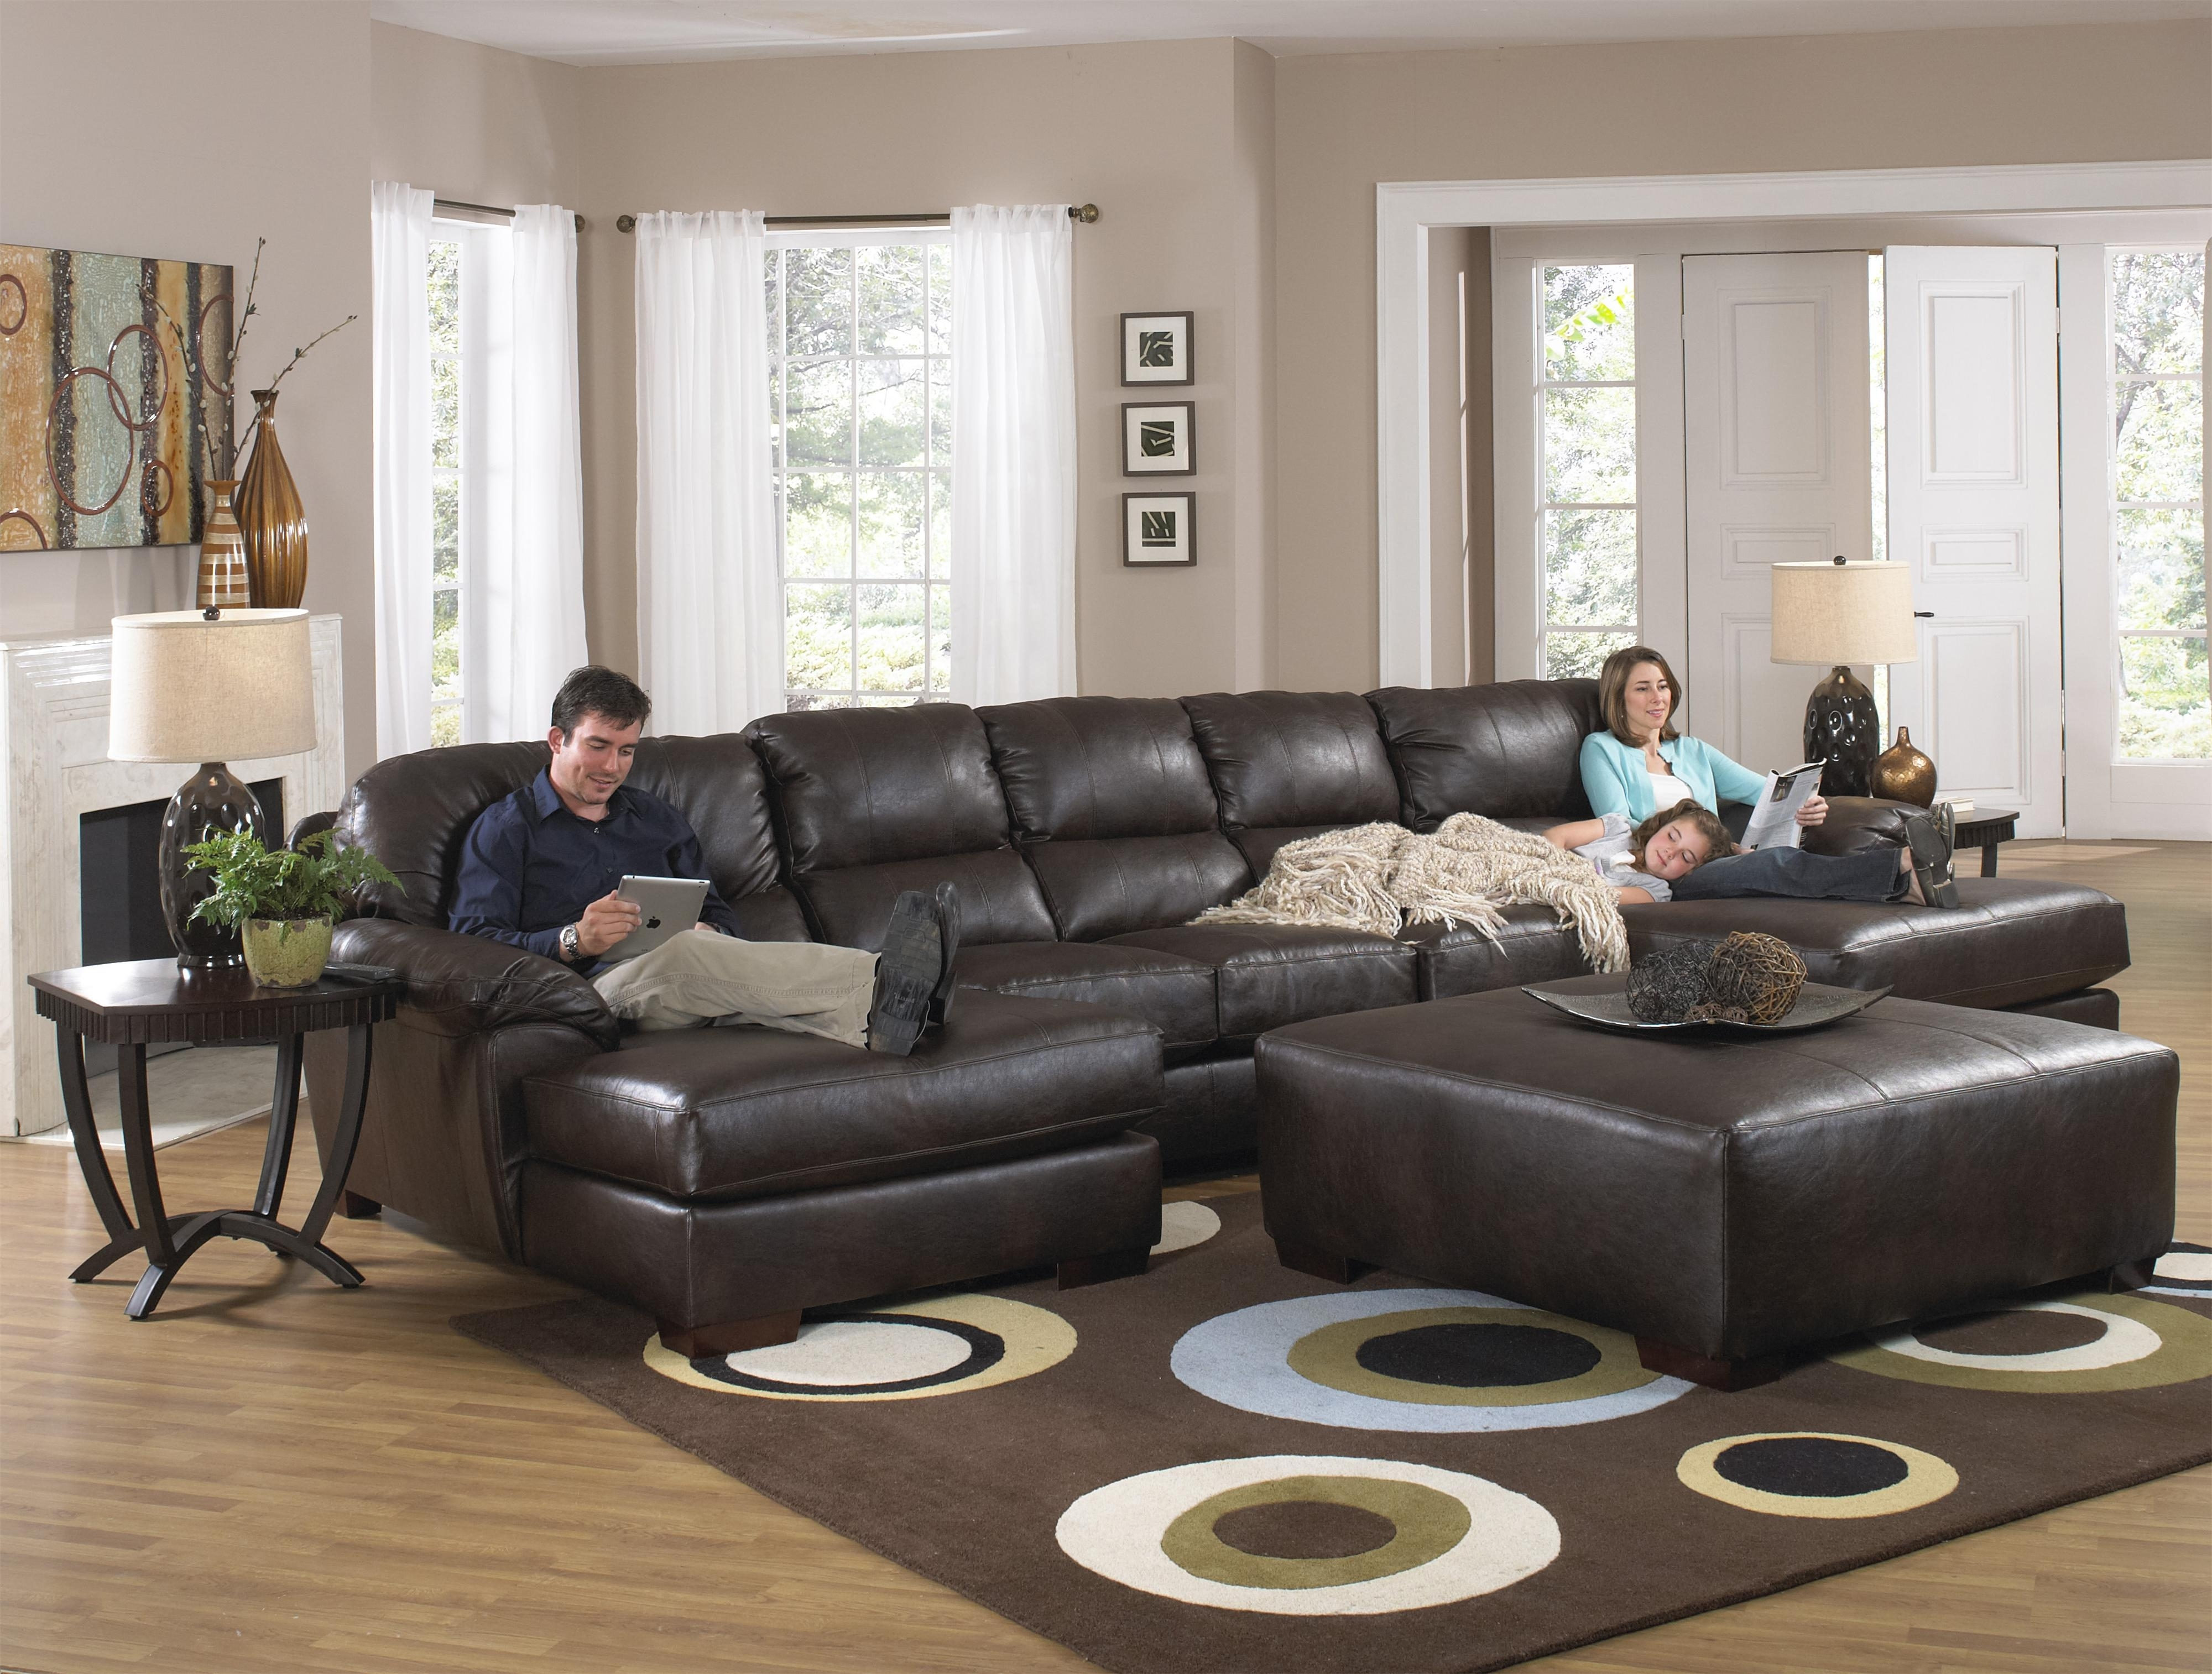 Ethan Allen Sectional Sofas Double Chaise Sectional U Shaped For Famous Double Chaise Couches (View 9 of 15)